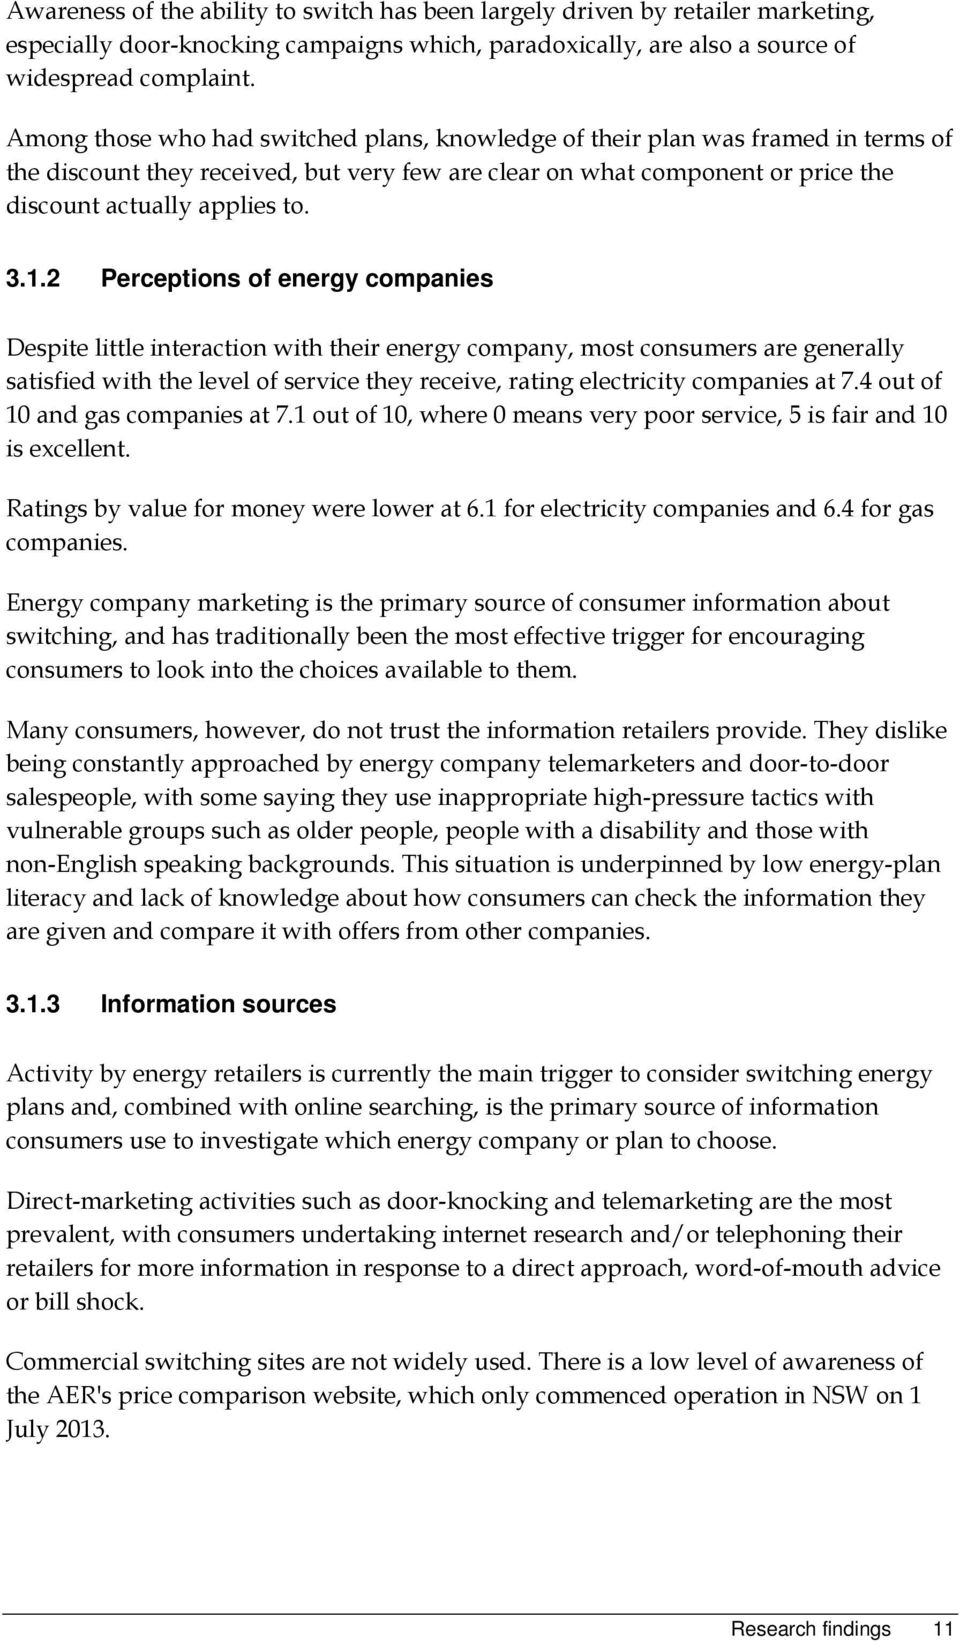 2 Perceptions of energy companies Despite little interaction with their energy company, most consumers are generally satisfied with the level of service they receive, rating electricity companies at